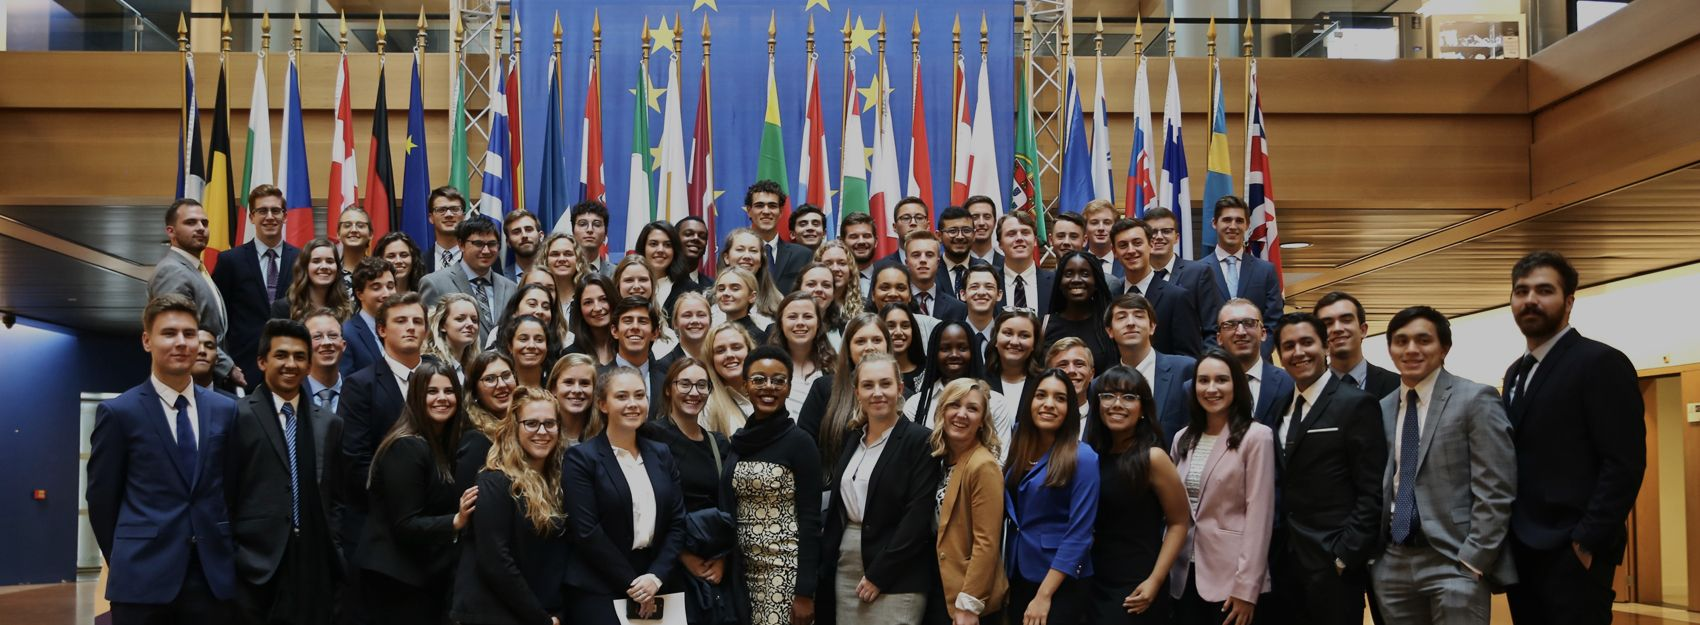 group of students standing in front of European country flags at EU Parliament